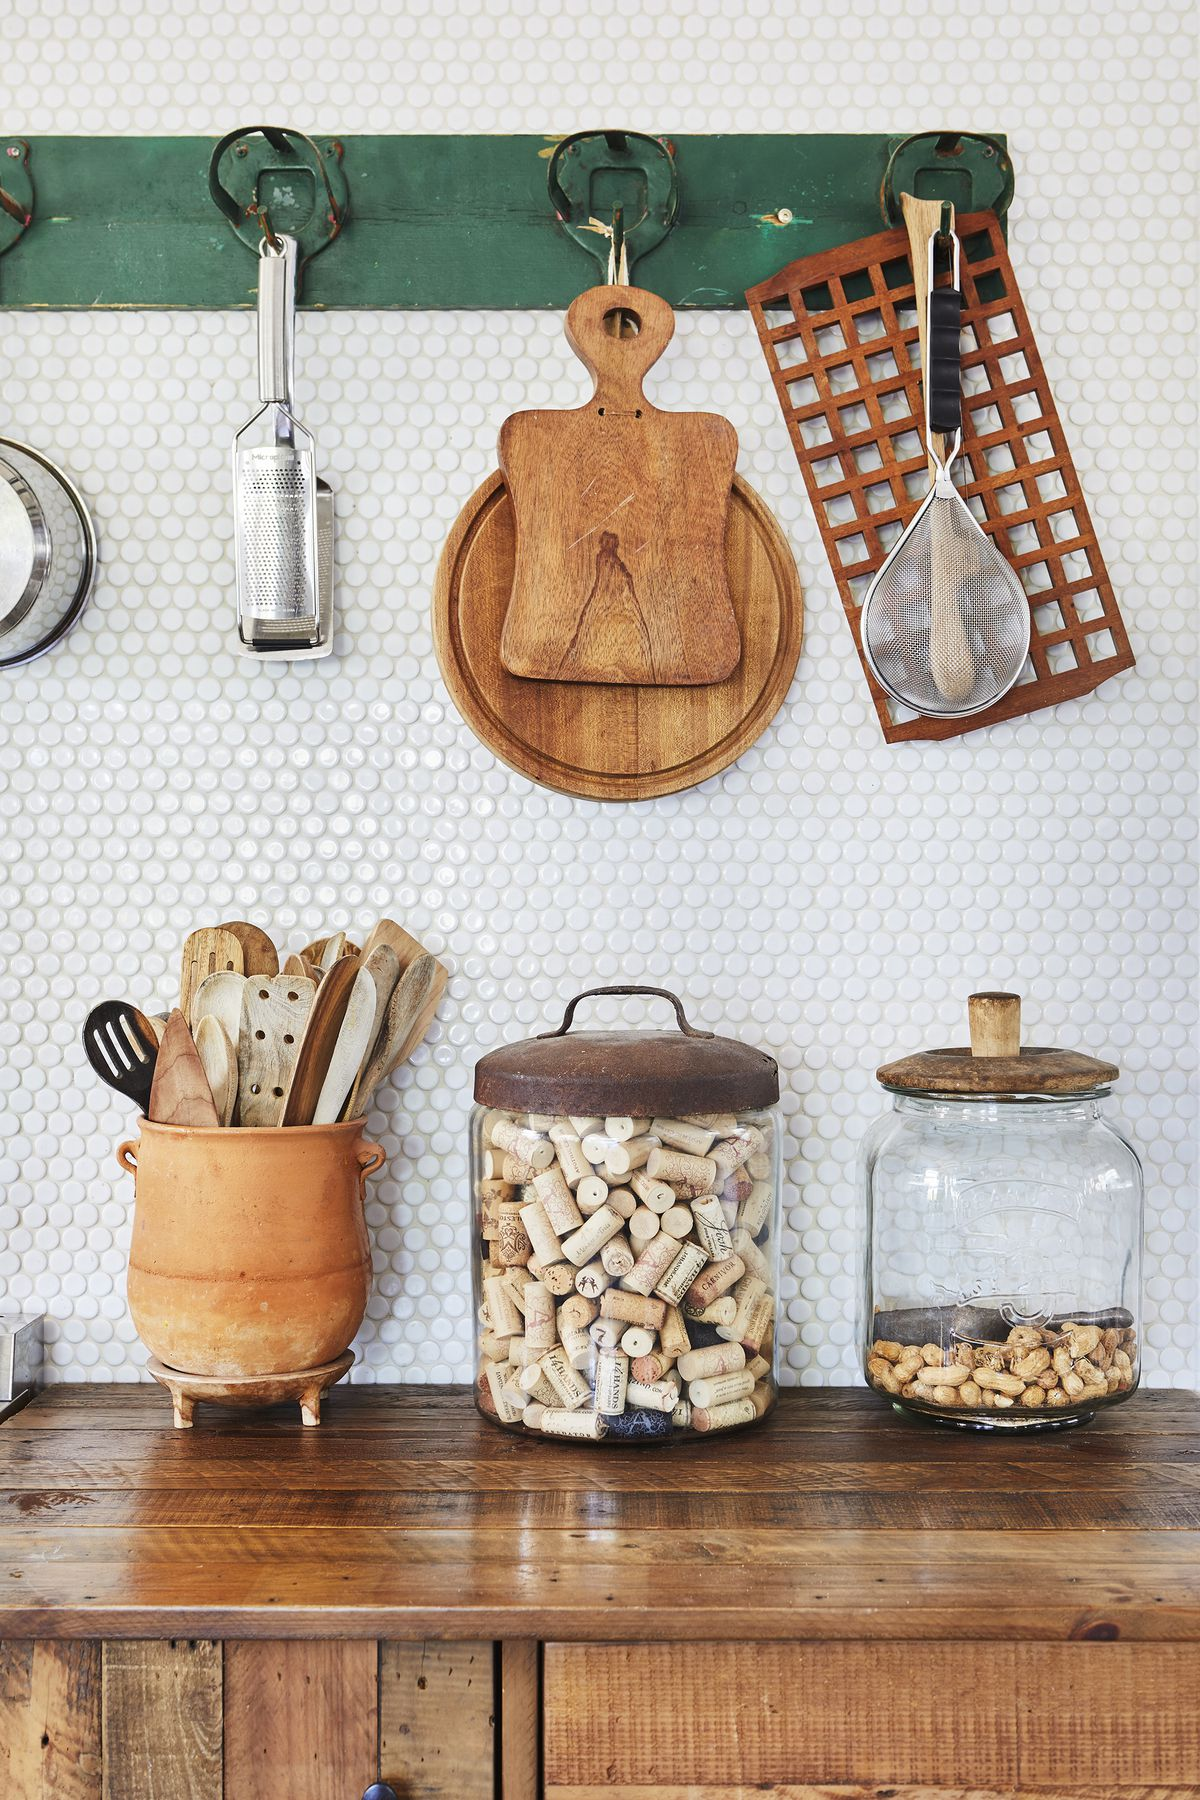 A green, metal rack hangs on a white-tiled wall in the kitchen. Below it, sit salvaged wood cabinets.